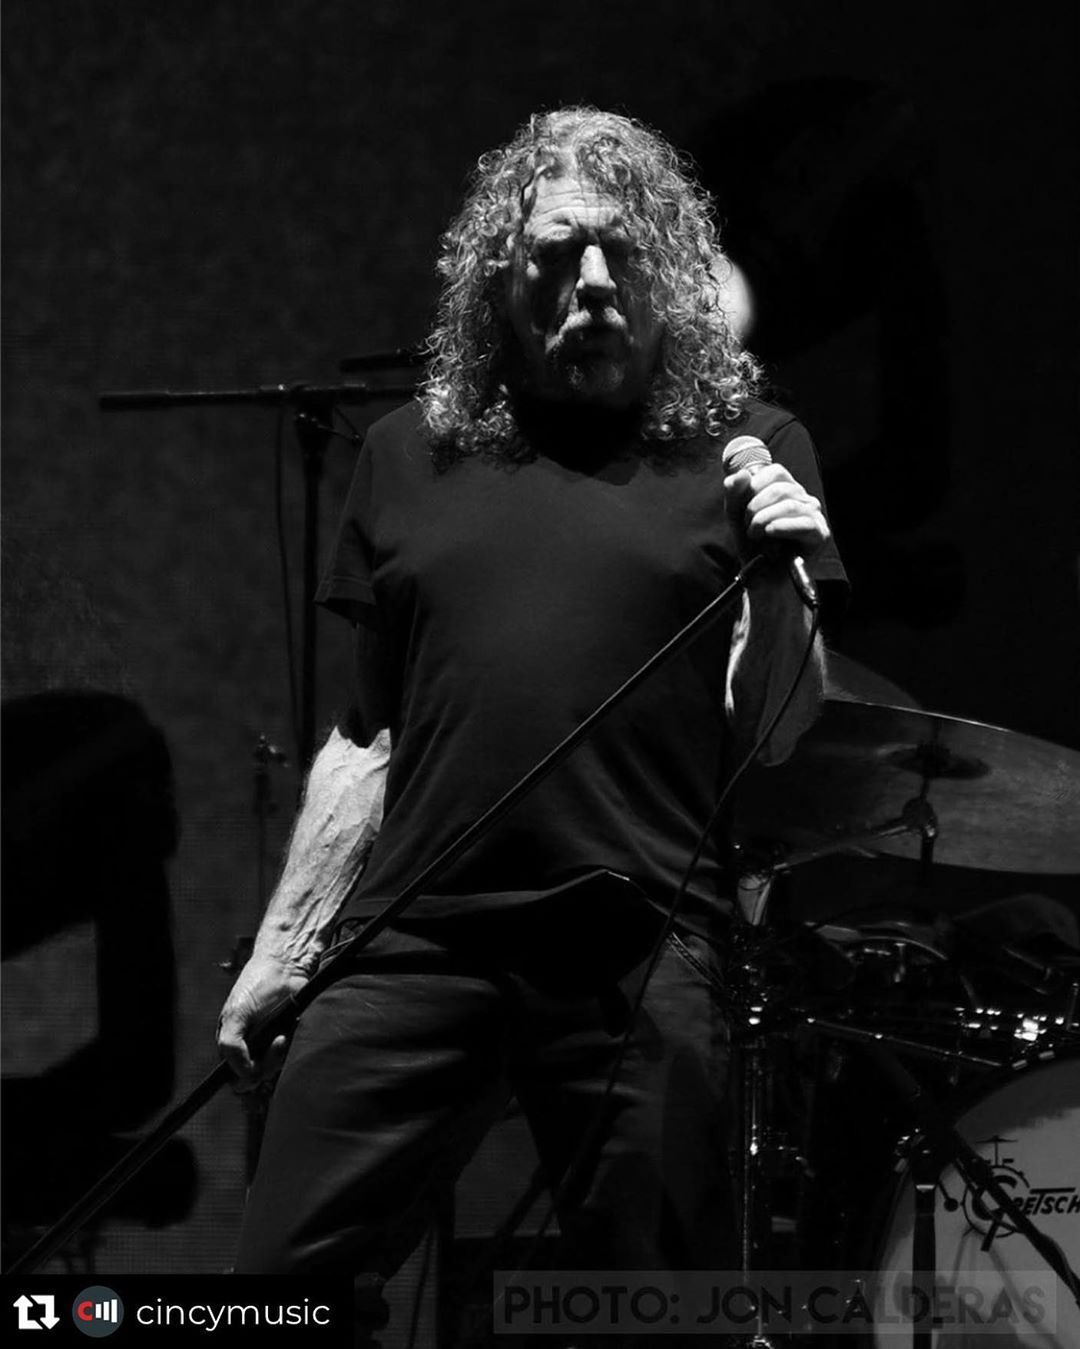 "Jon on Instagram: ""My photo of Robert Plant from Bourbon & Beyond. Reposted from @cincymusic  Batting in the big leagues. #robertplant #ledzeppelin…"" #robertplant"